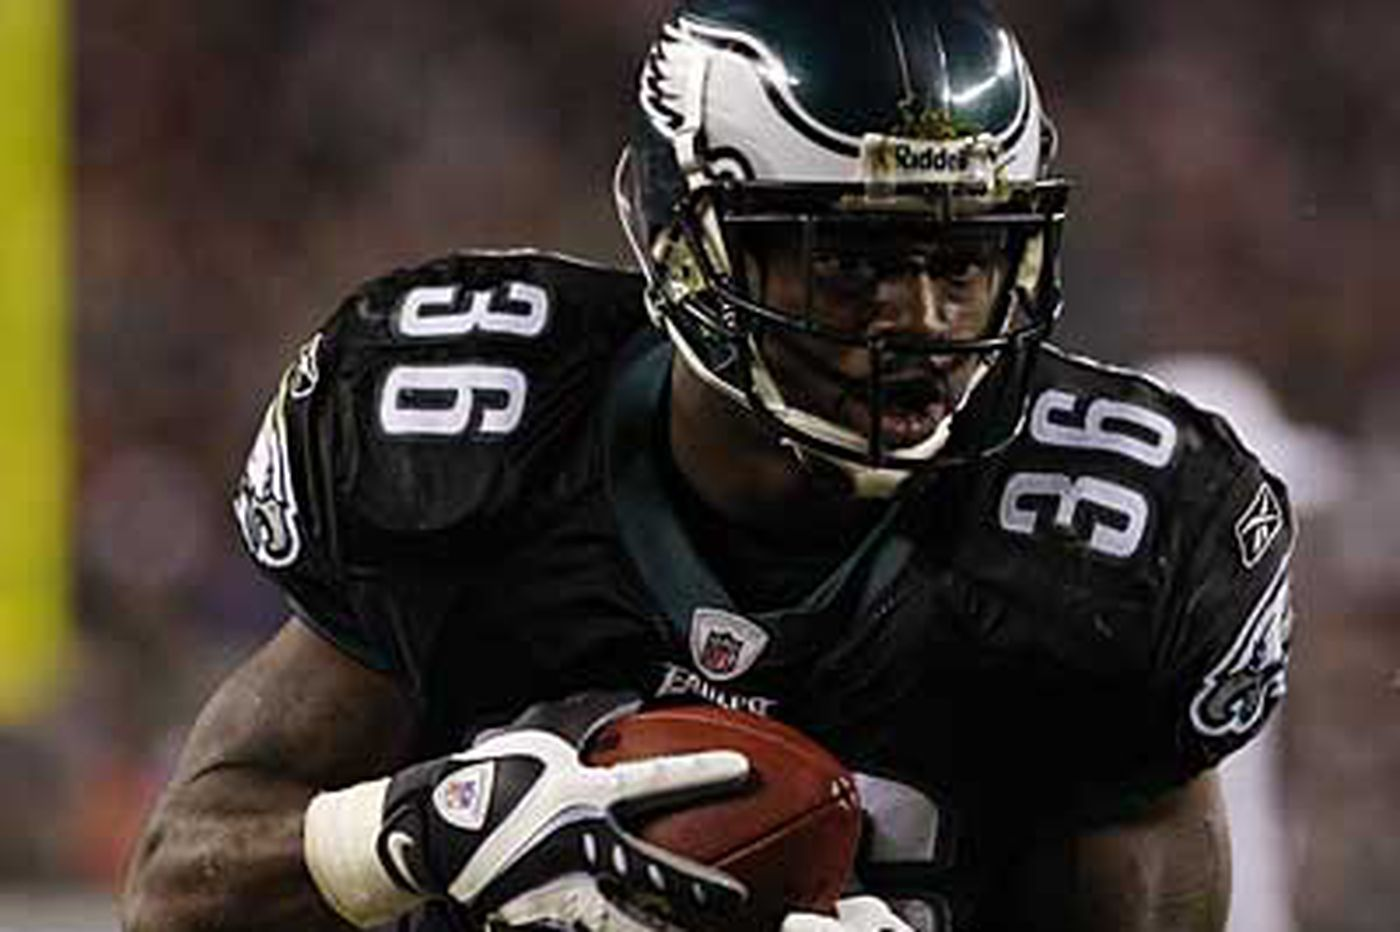 Paul Domowitch: Eagles' Westbrook sore, but sure didn't hurt